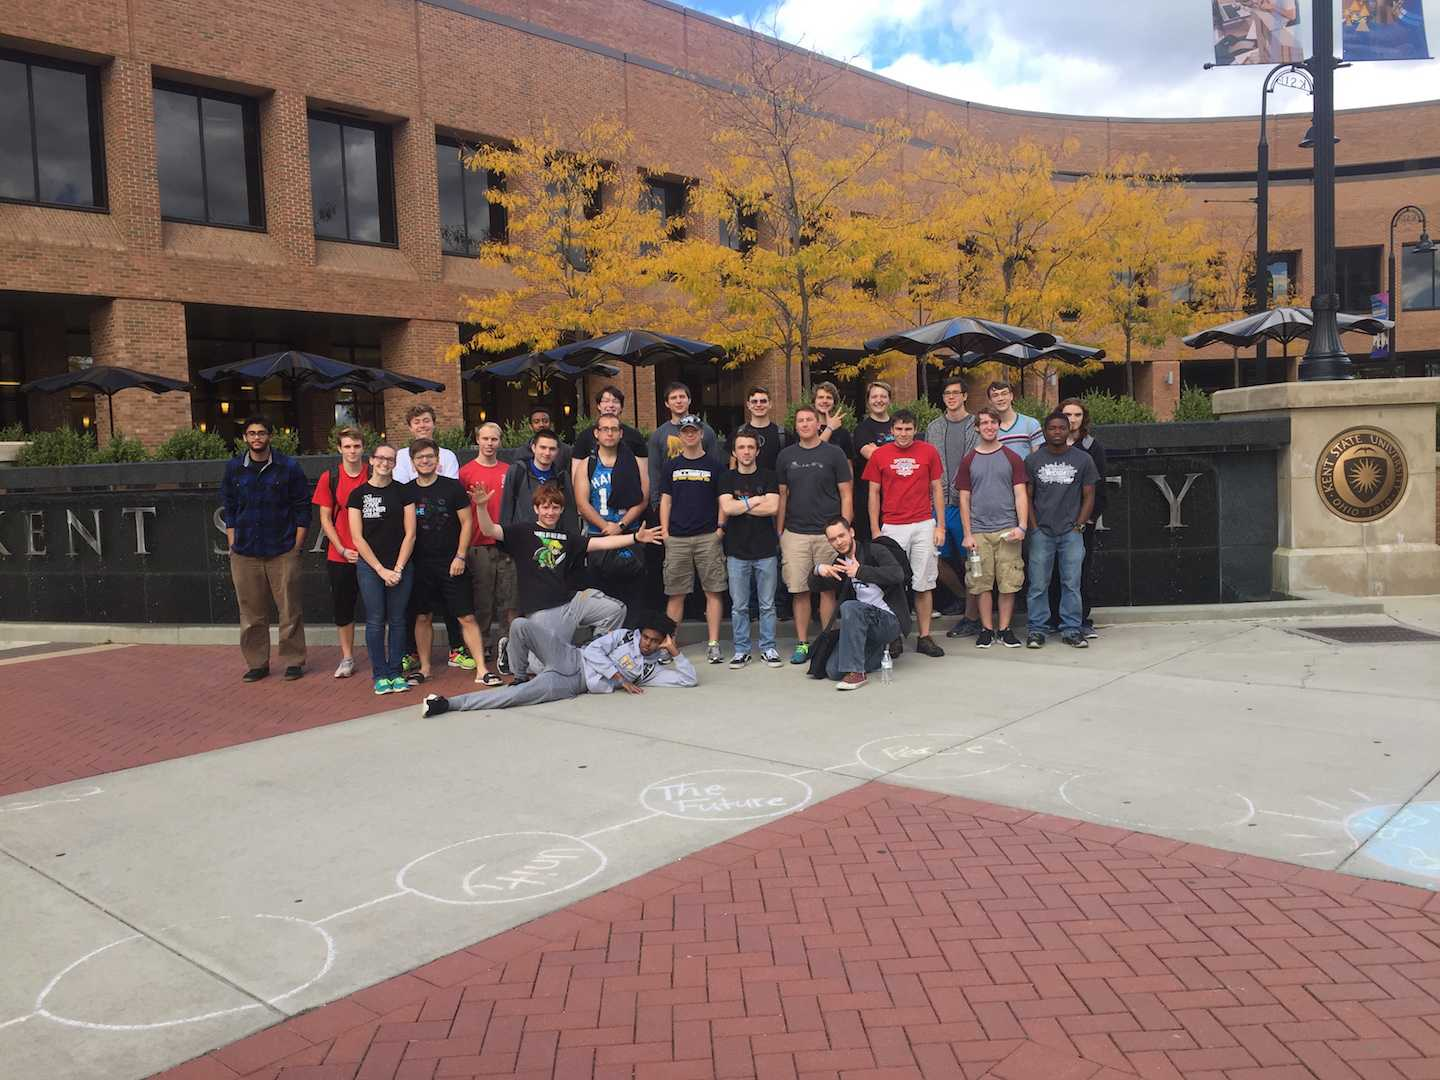 HAkron members pose for a picture at the recent Kent State hackathon.